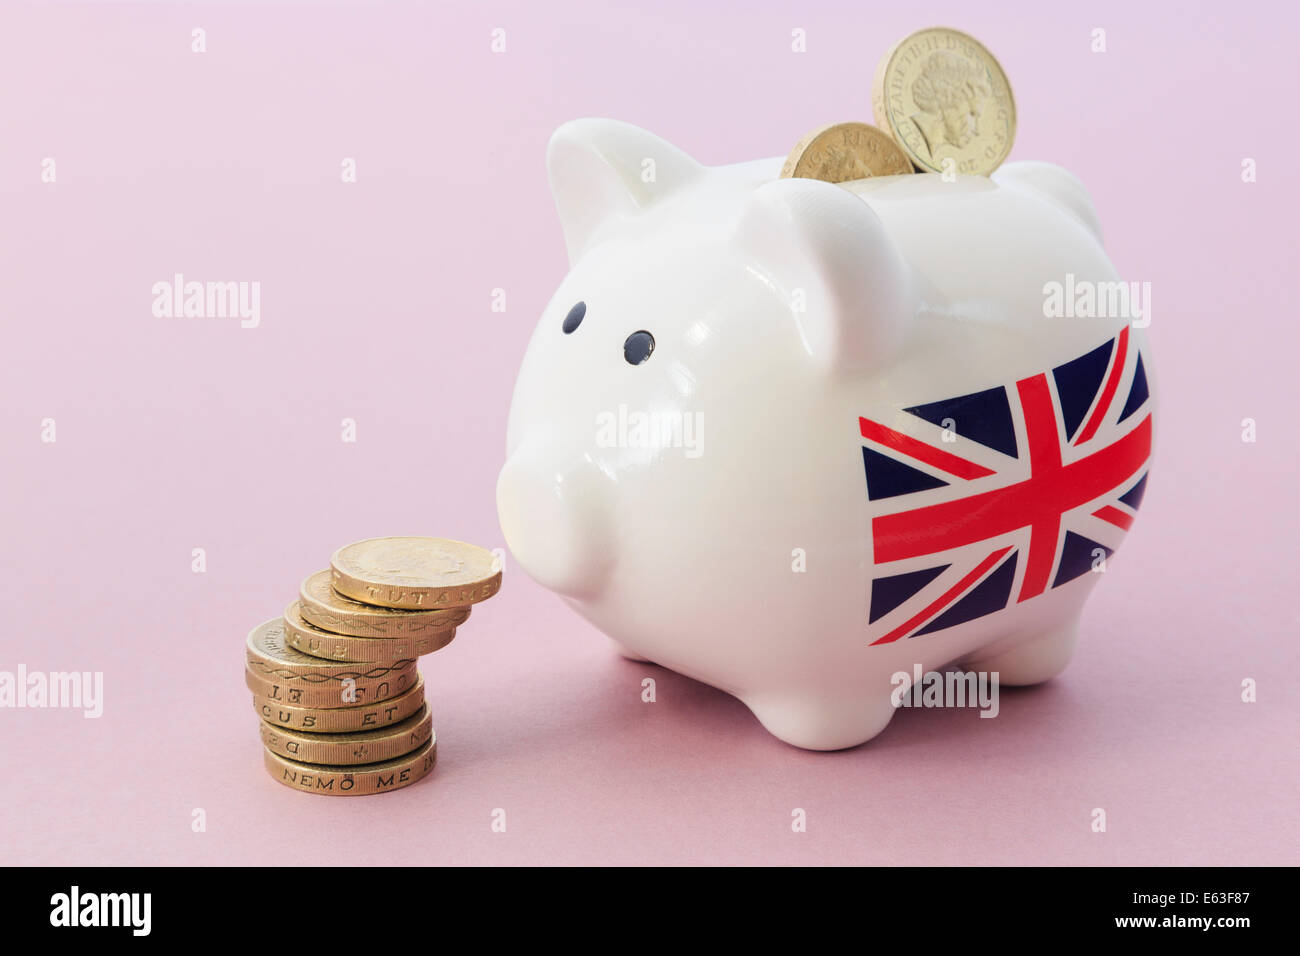 British Union Jack on Piggy bank looking at a pile of sterling pounds  pound coins illustrating savings and financial - Stock Image